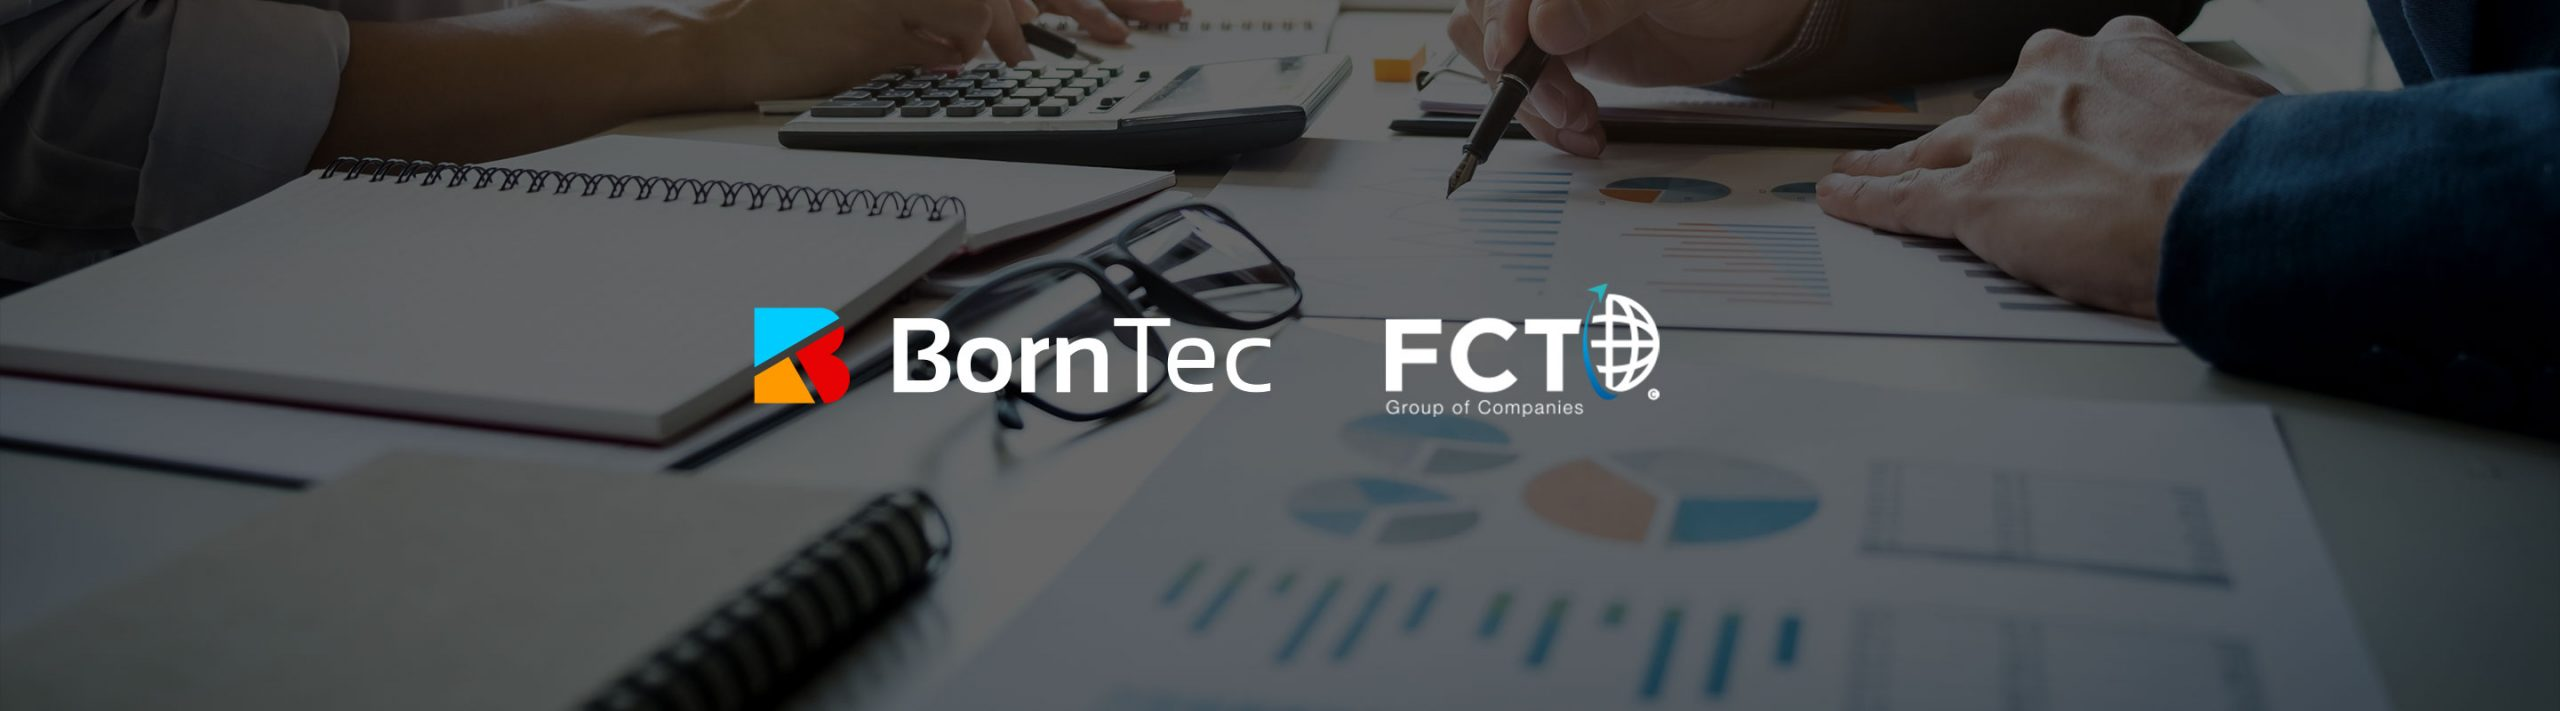 BornTec's CrossCheck Selected by FCT Europe Limited as Premier Regulatory Solution